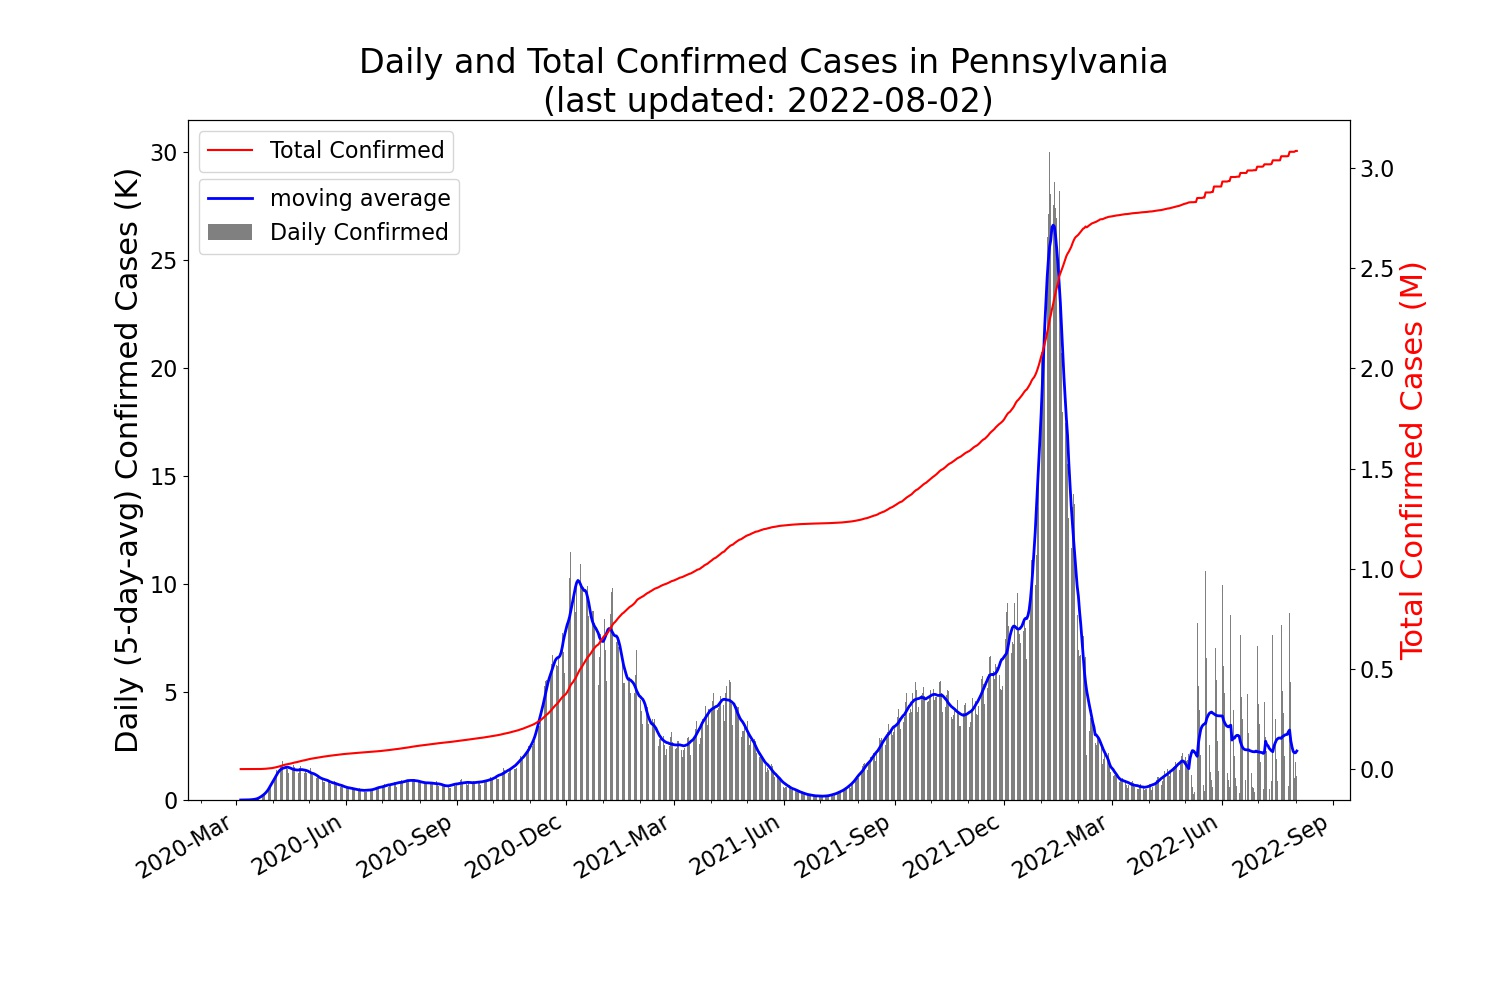 Trend of the daily/total confirmed COVID-19 cases in PA